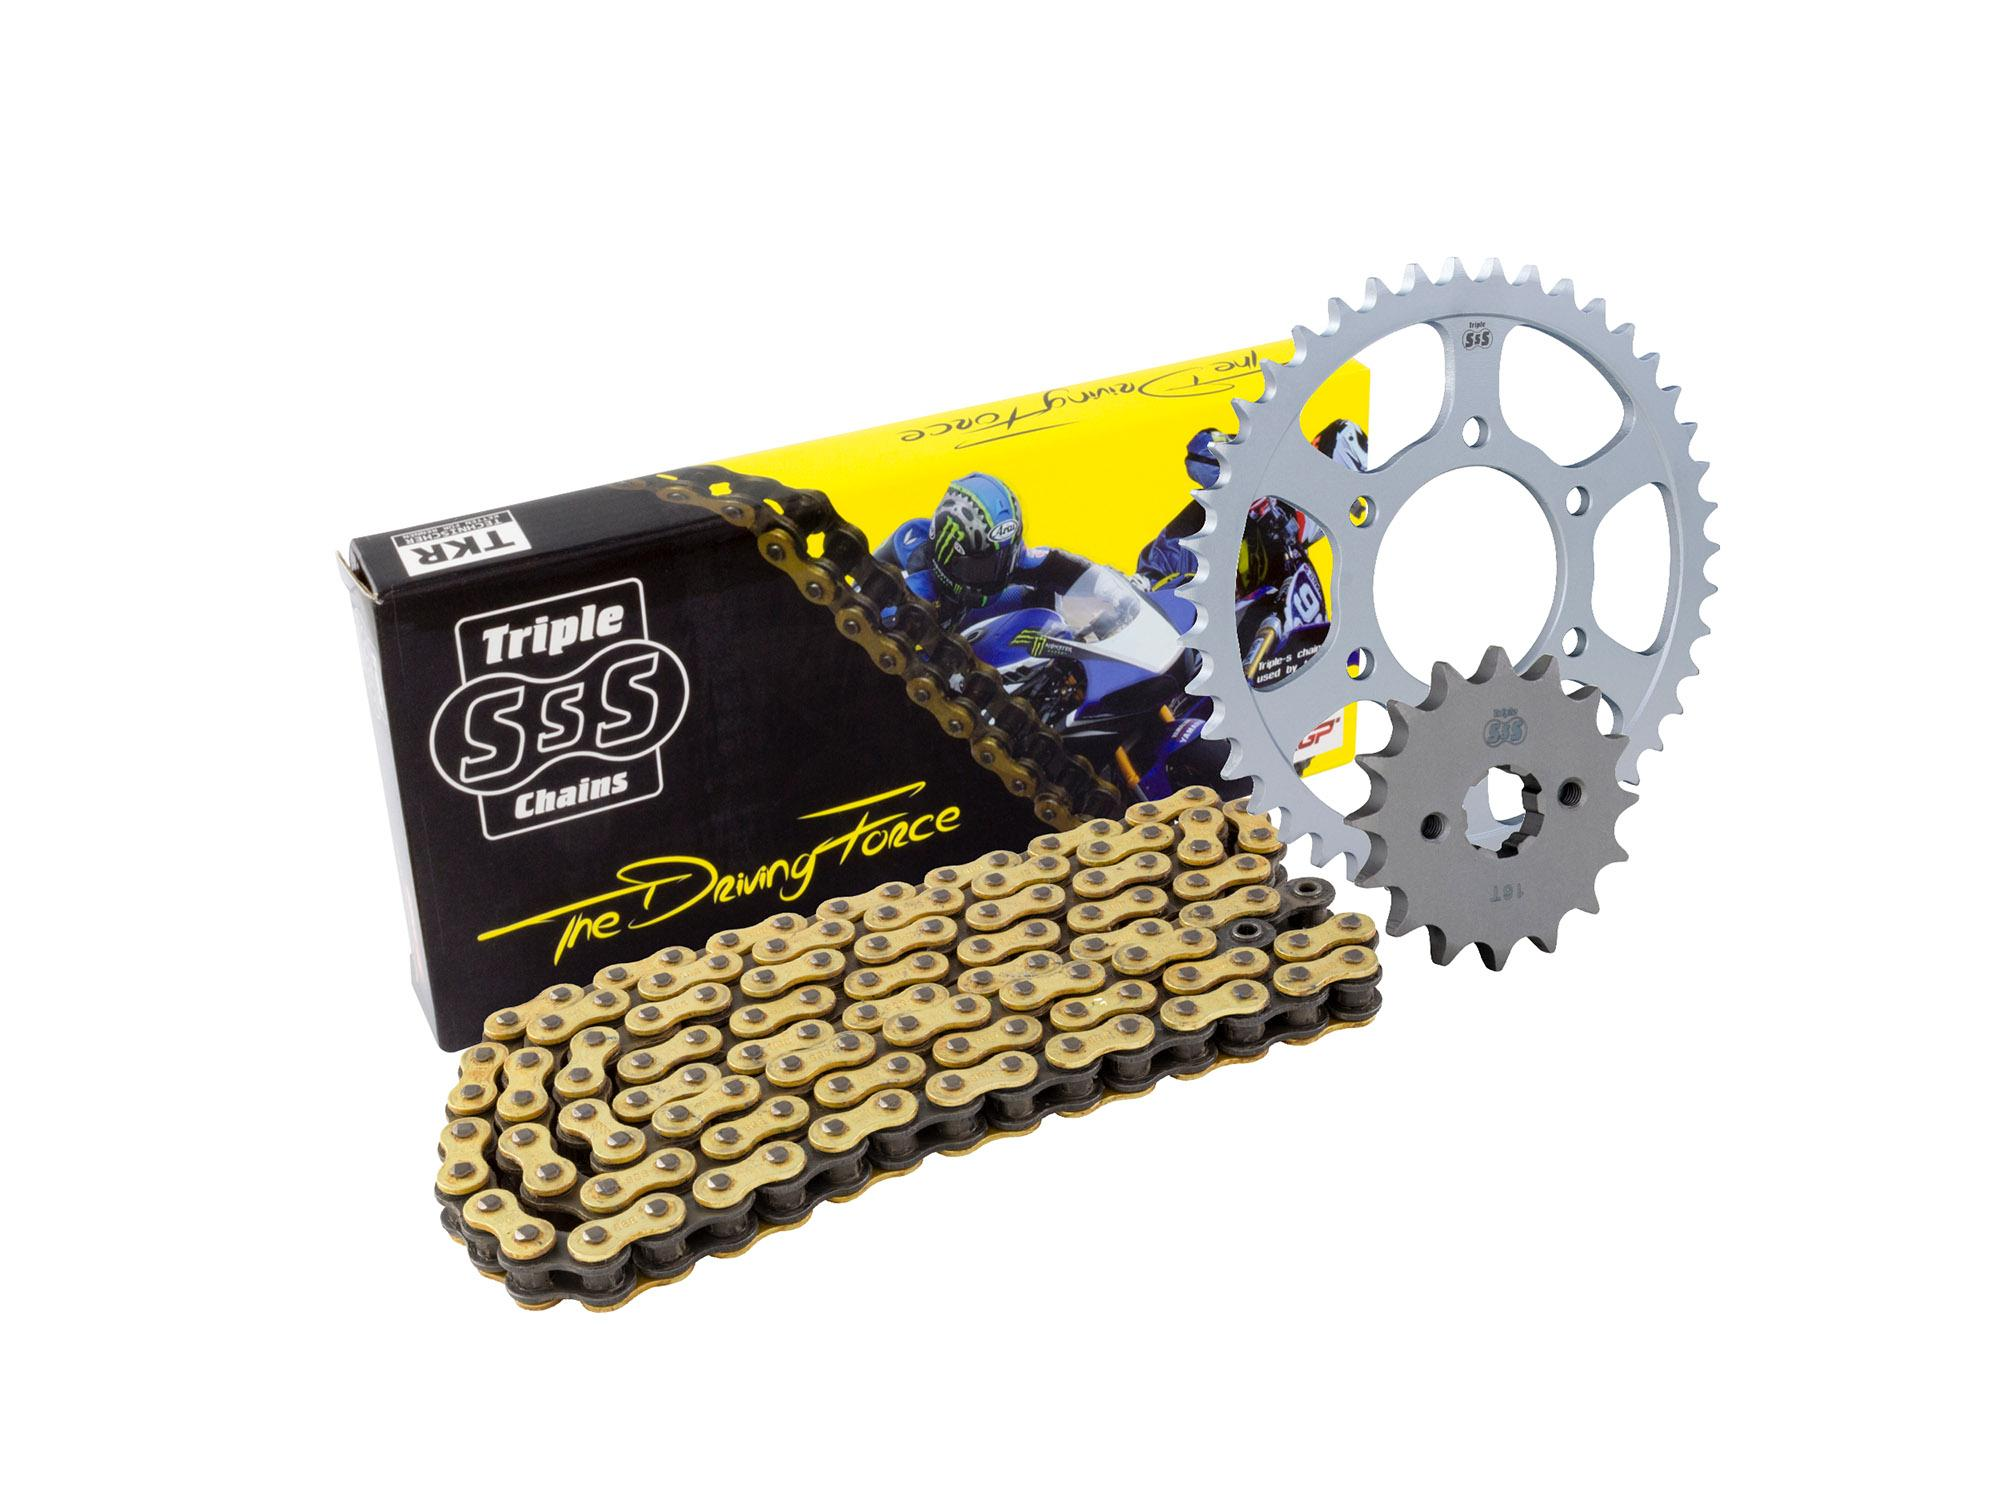 Honda CBR600 FH/FJ/FK/FL 87-90 Chain & Sprocket Kit: 15T Front, 43T Rear, HD O-Ring Gold Chain 530H 110Link